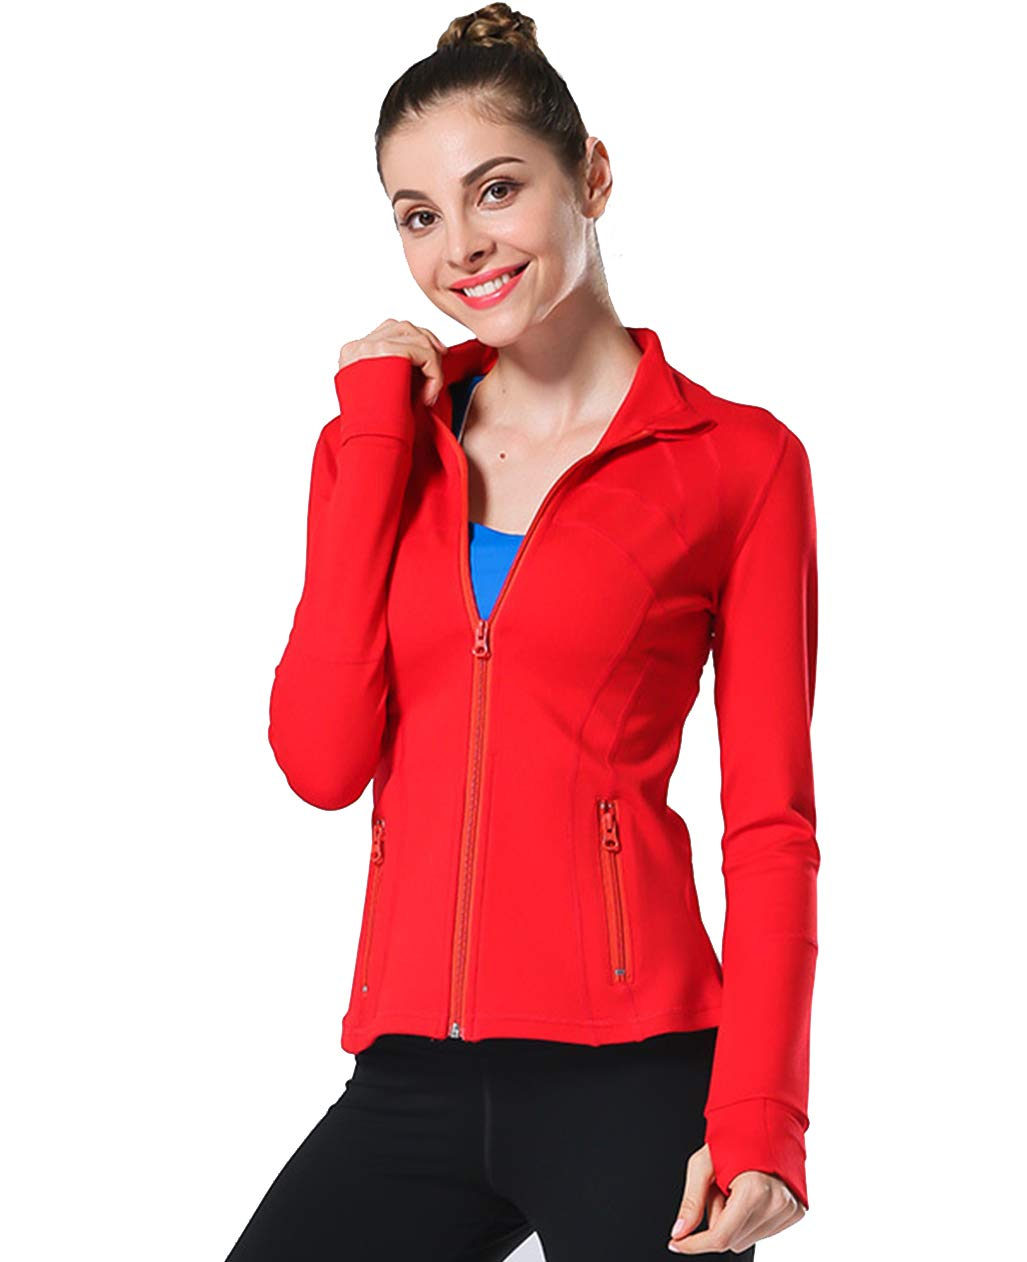 UDIY Womens Slim Fit Activewear Jackets Sweatshirts with Two Side Pocket Jacket Coat Red by UDIY